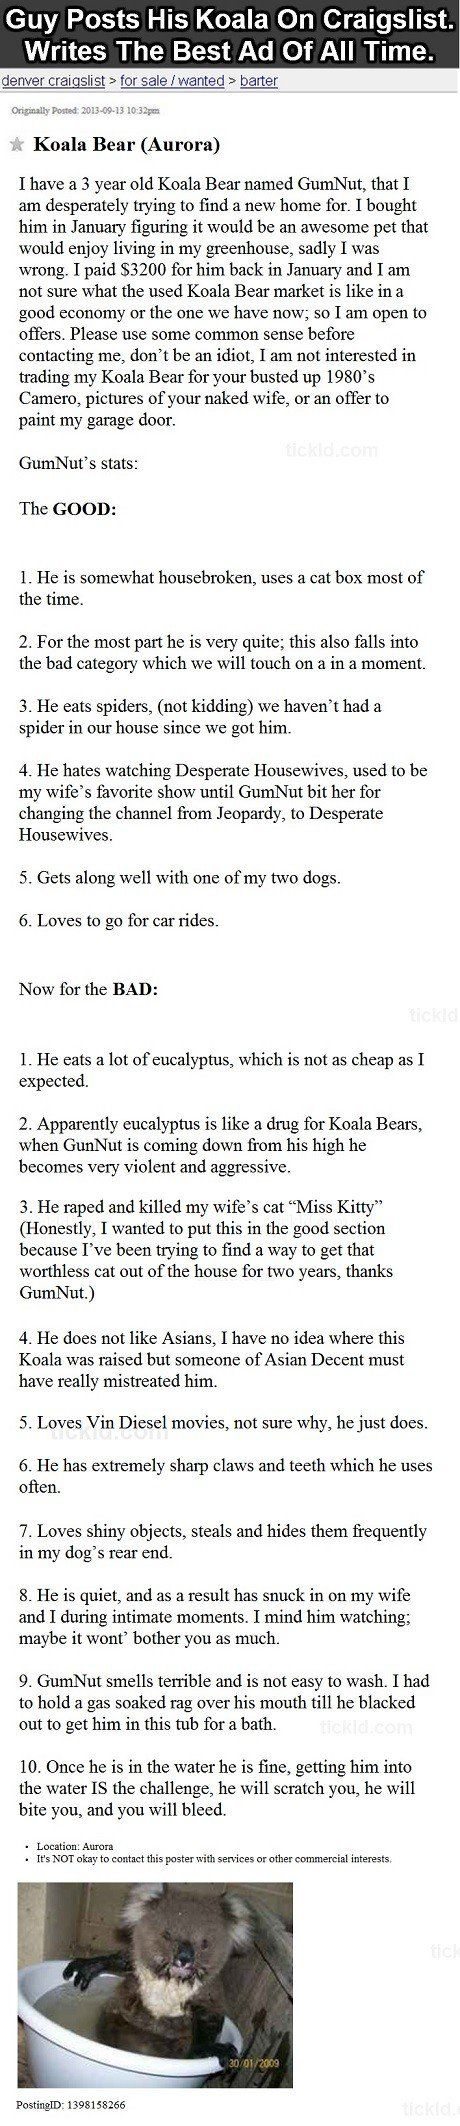 Gumnut The Koala Funny Craigslist Ads Funny Best Funny Pictures